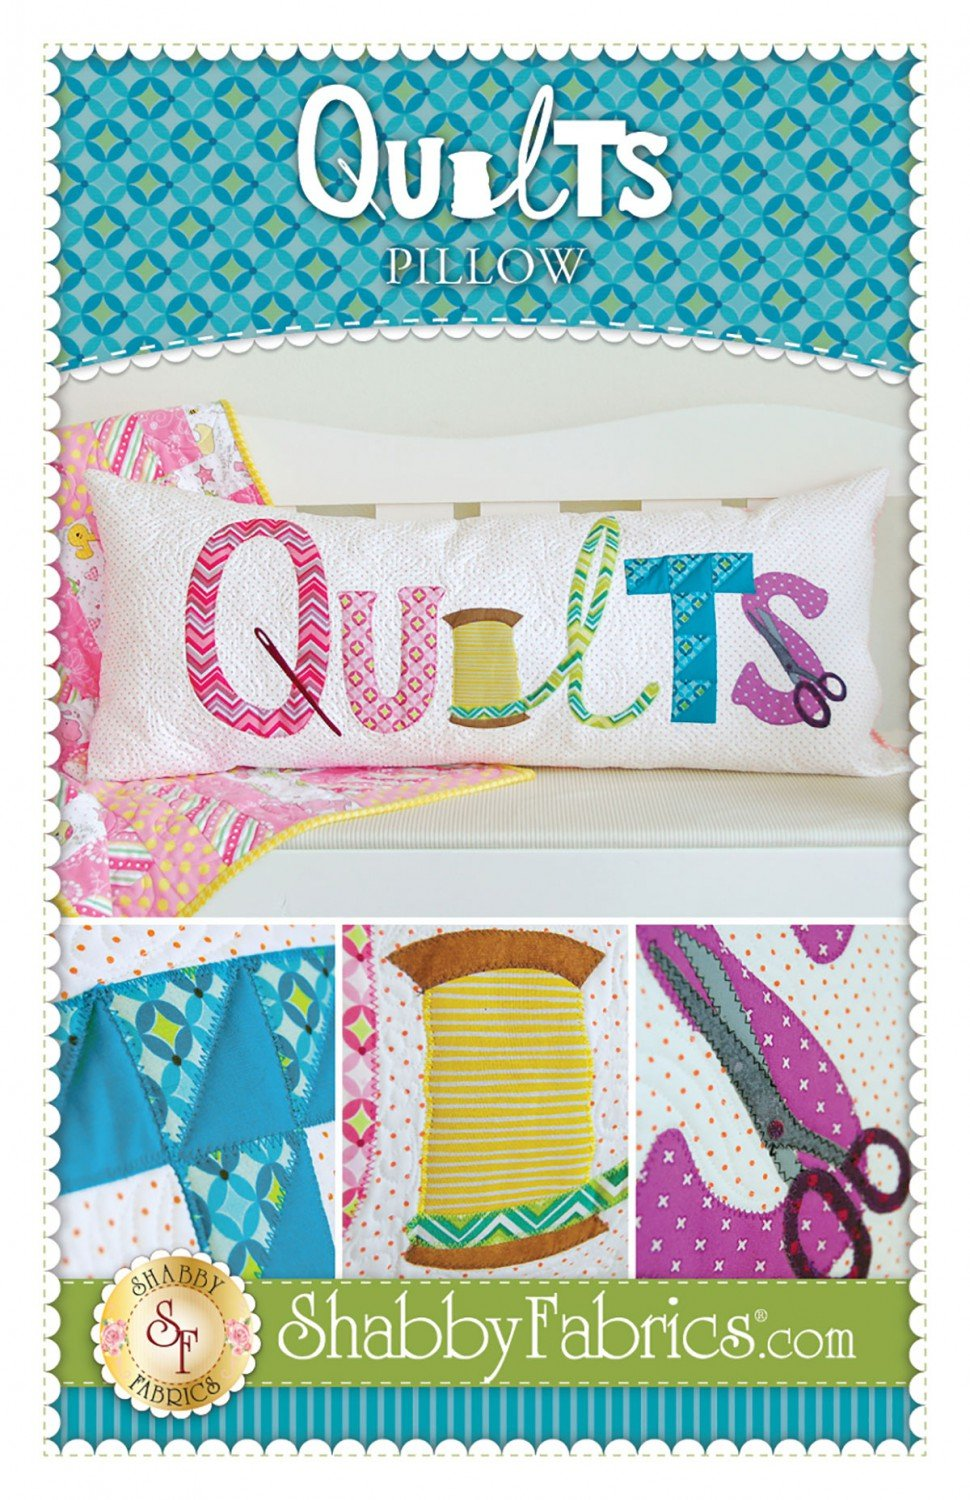 Quilts Pillow by Shabby Fabric